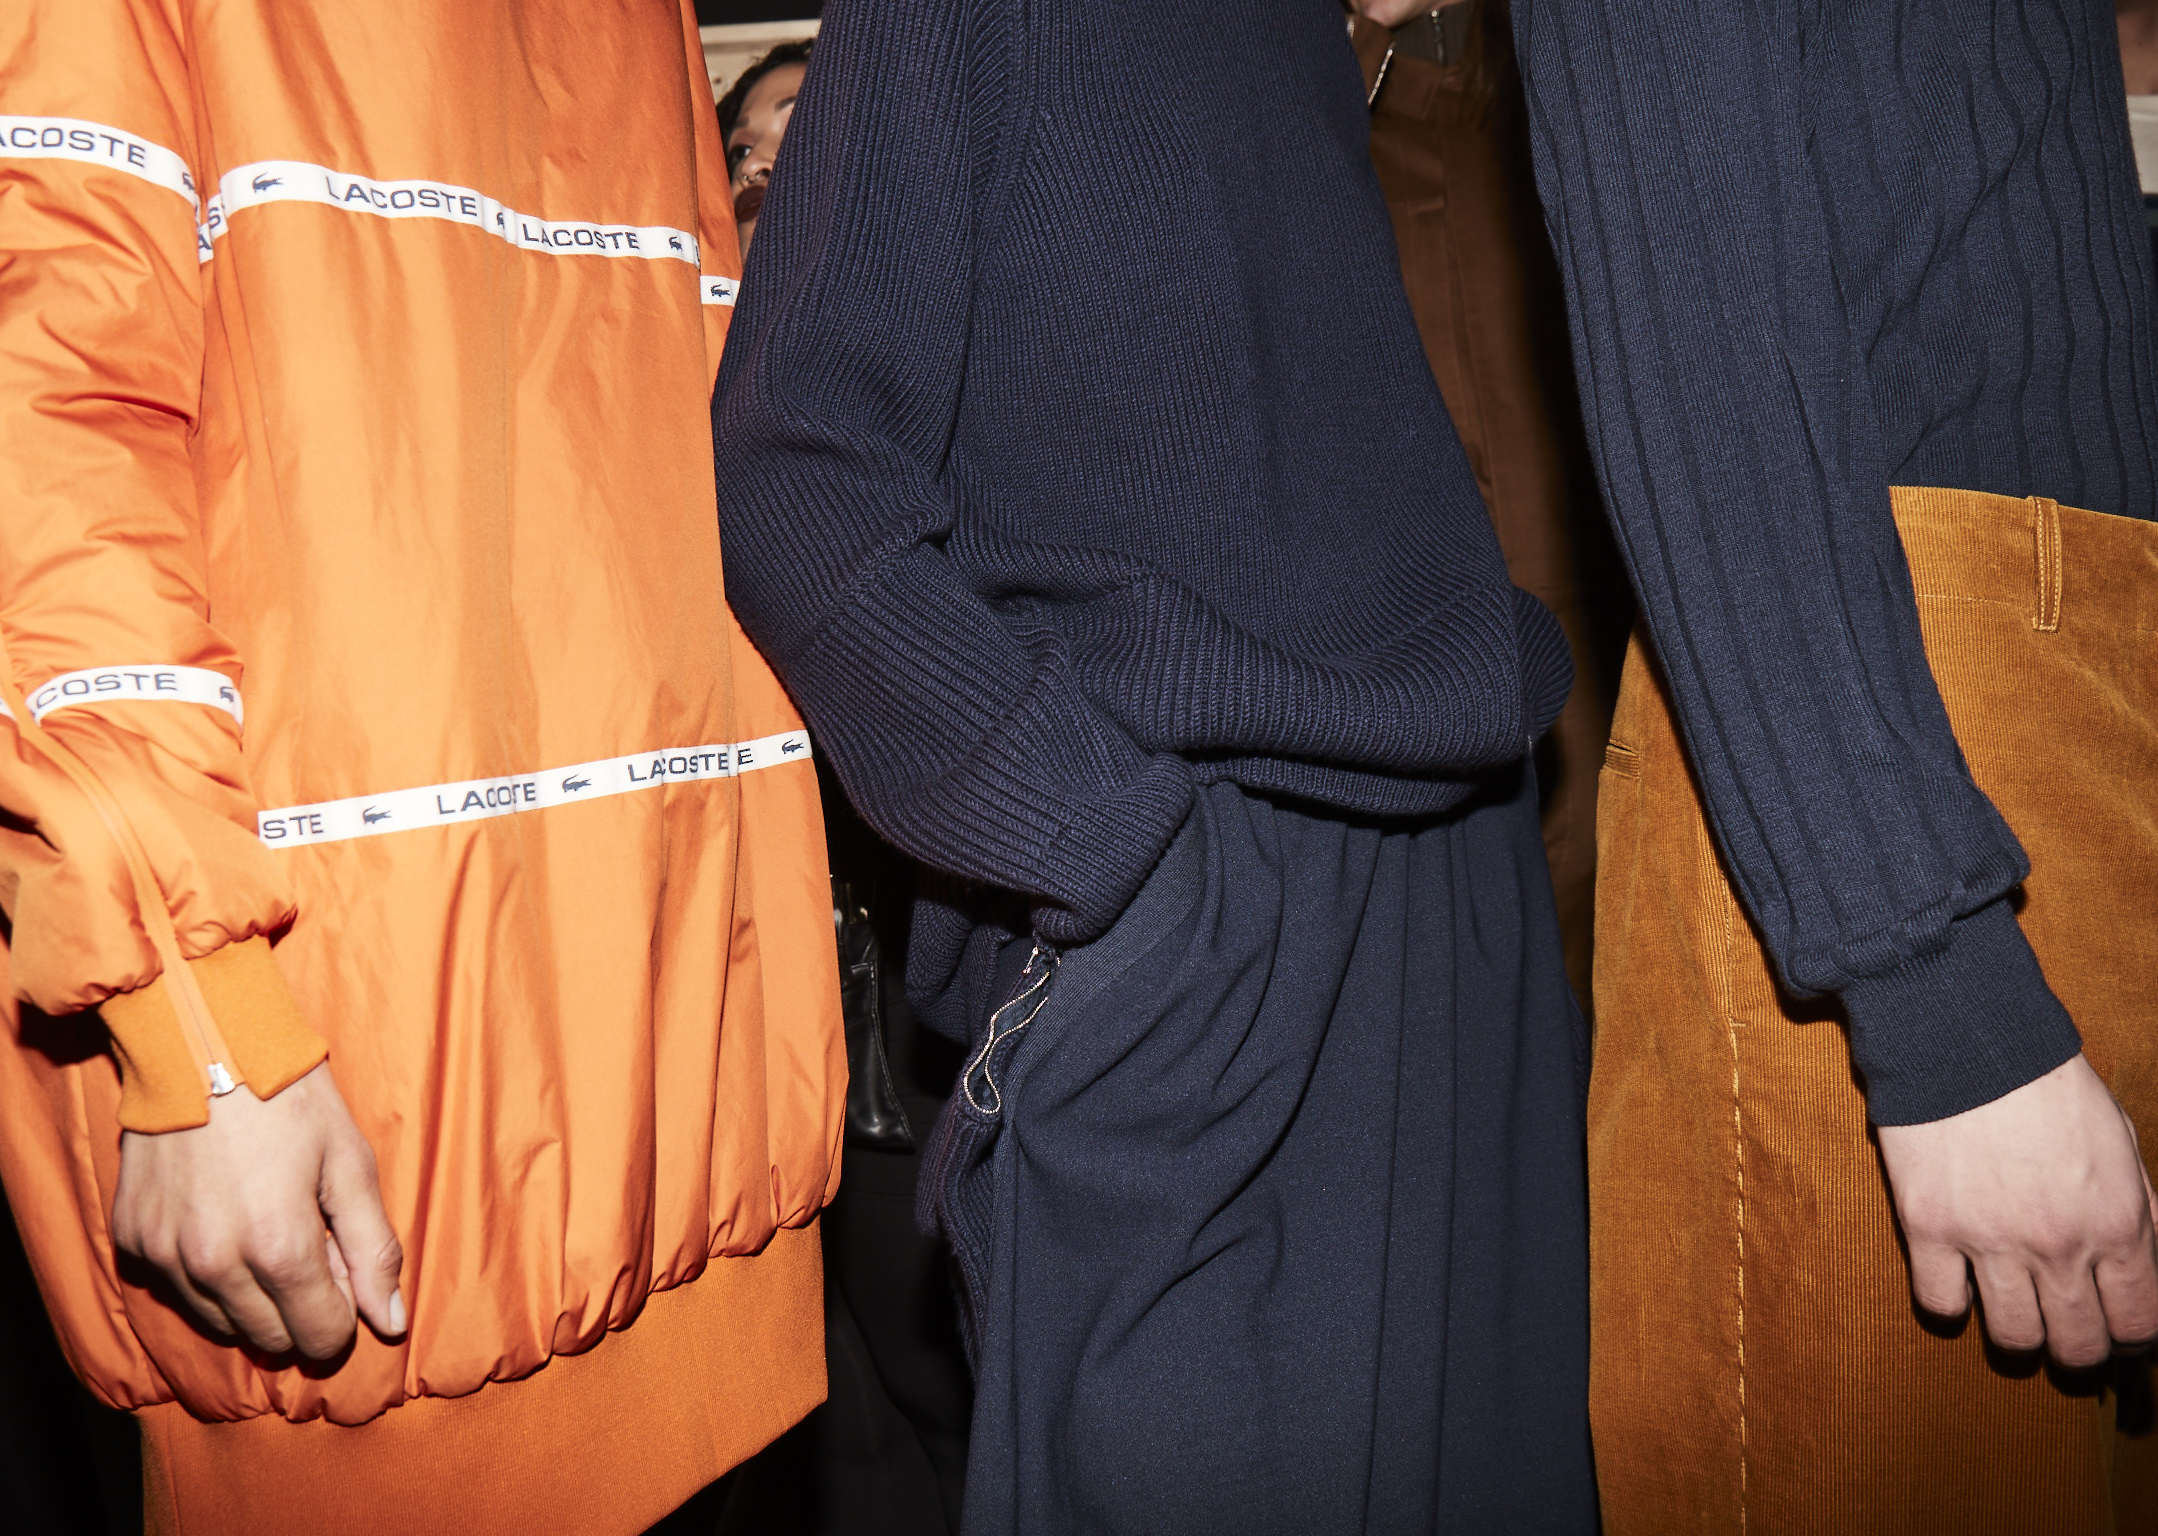 13_LACOSTE_Fall_Winter_16_Backstage.jpg